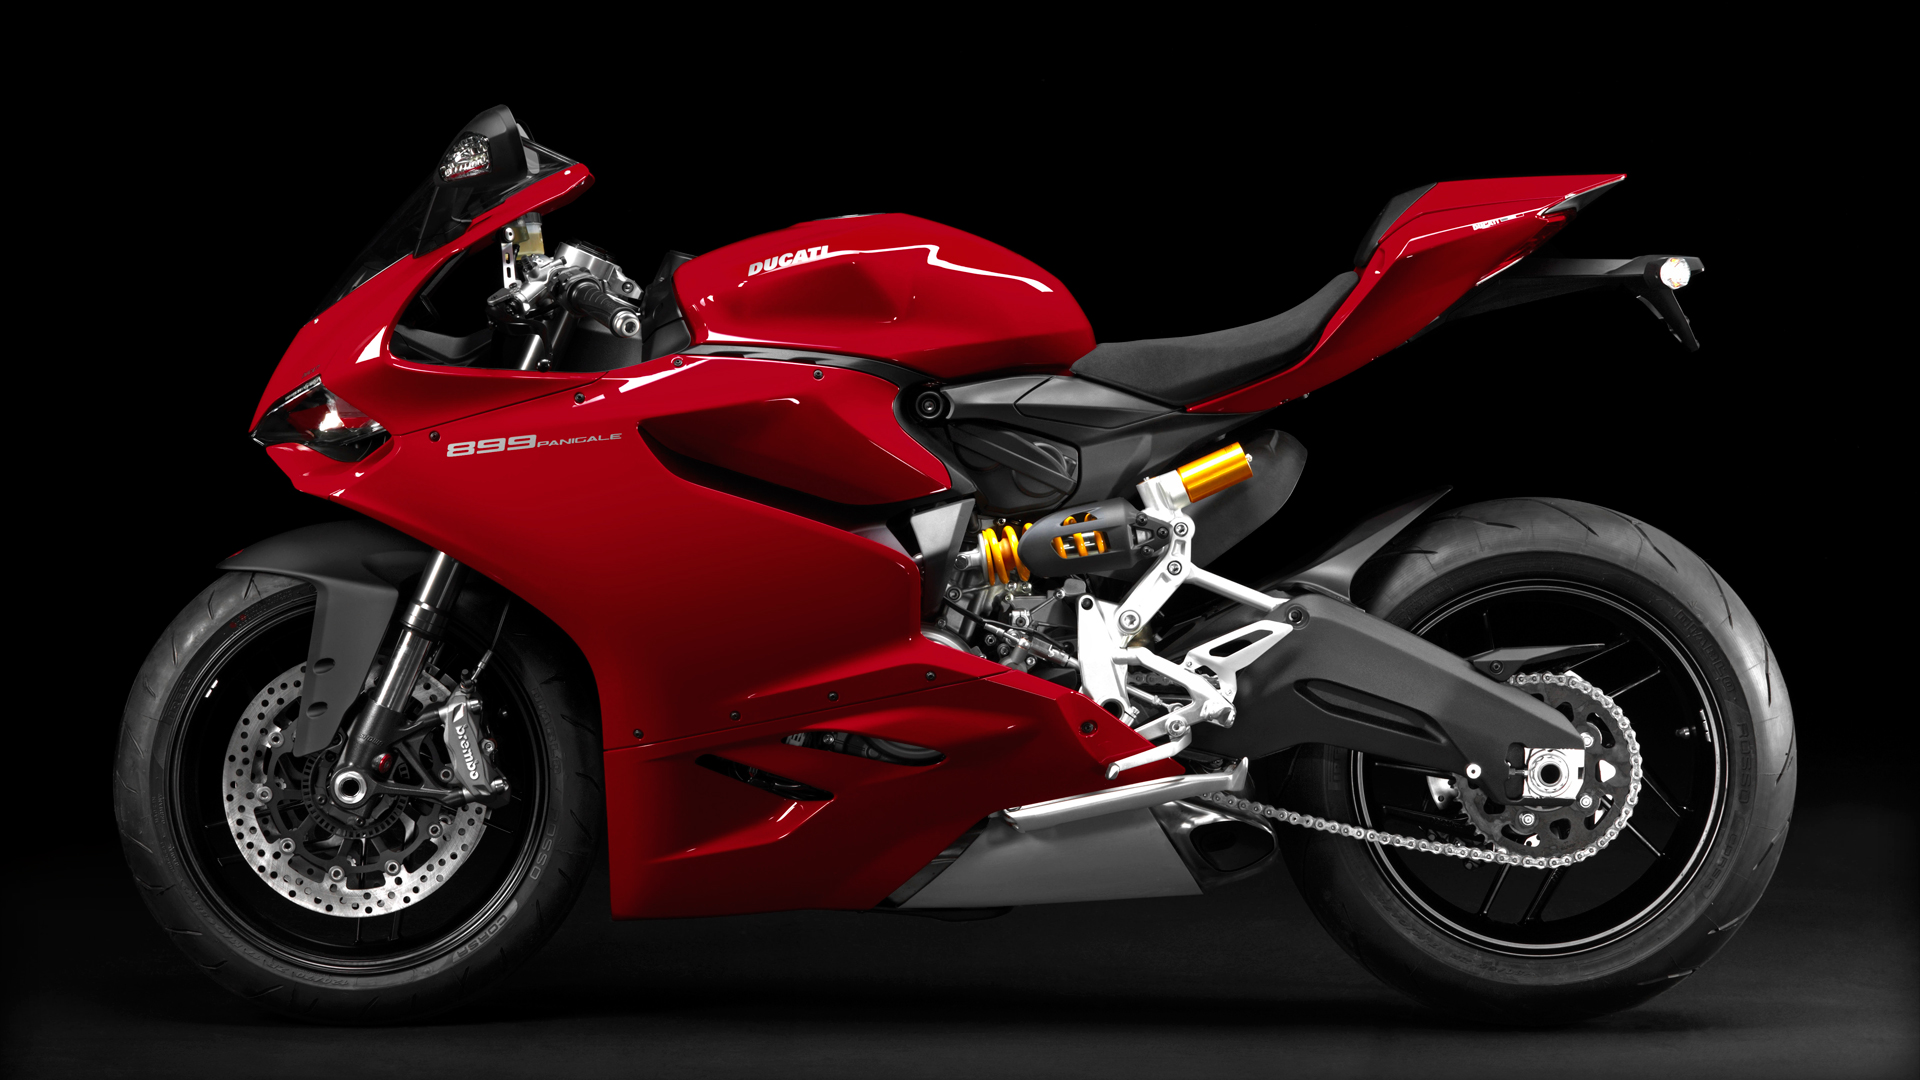 ducati 899 panigale hd wallpapers   DriverLayer Search Engine 1920x1080